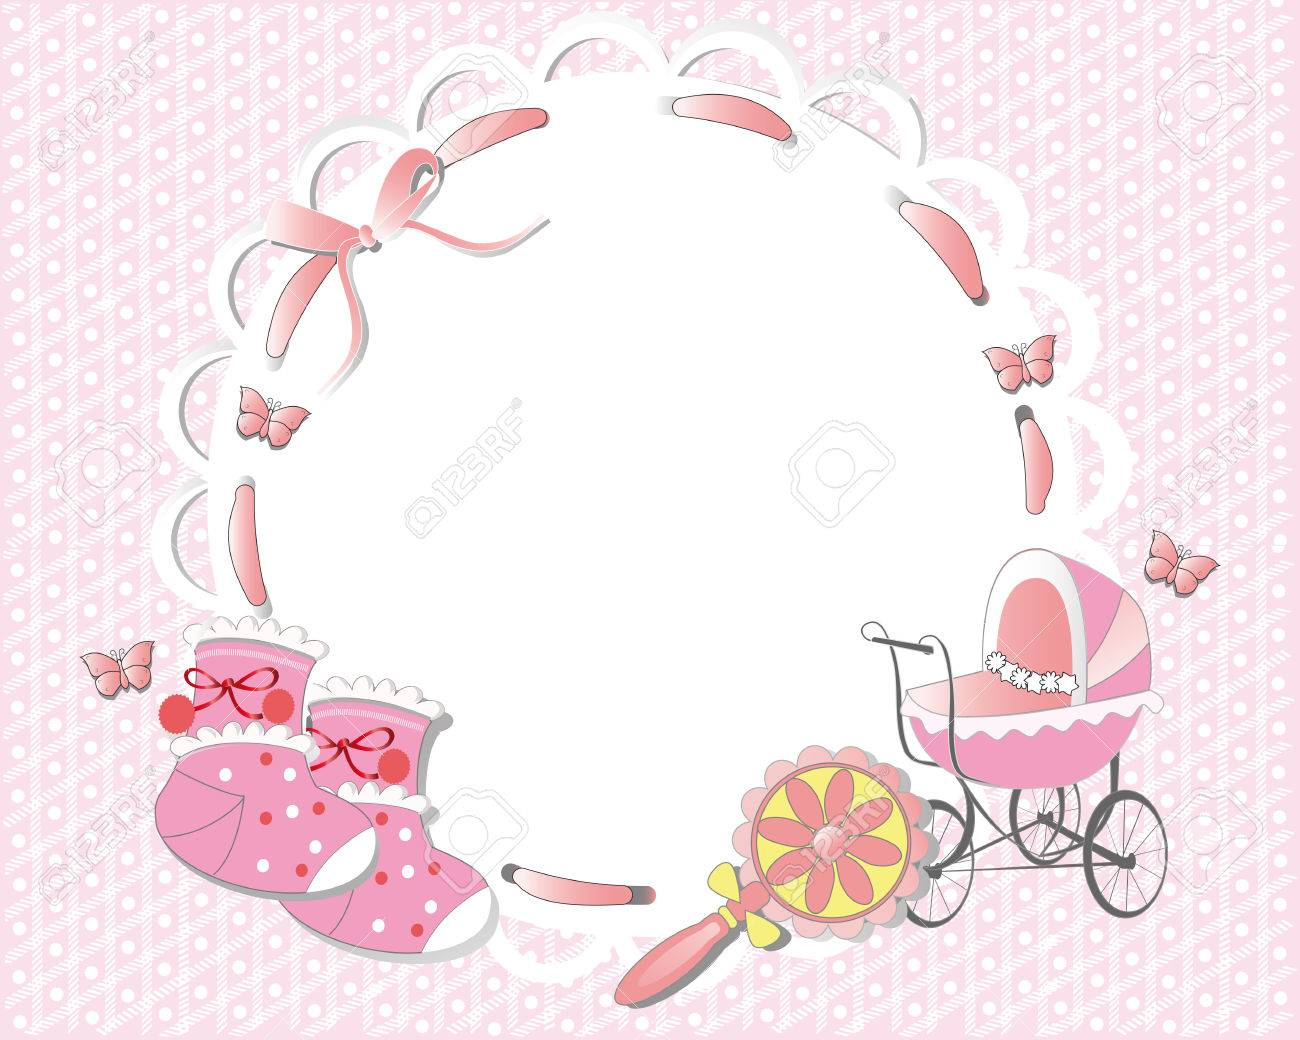 Children frame decorated with a pink ribbon, baby carriage, socks - 60525039